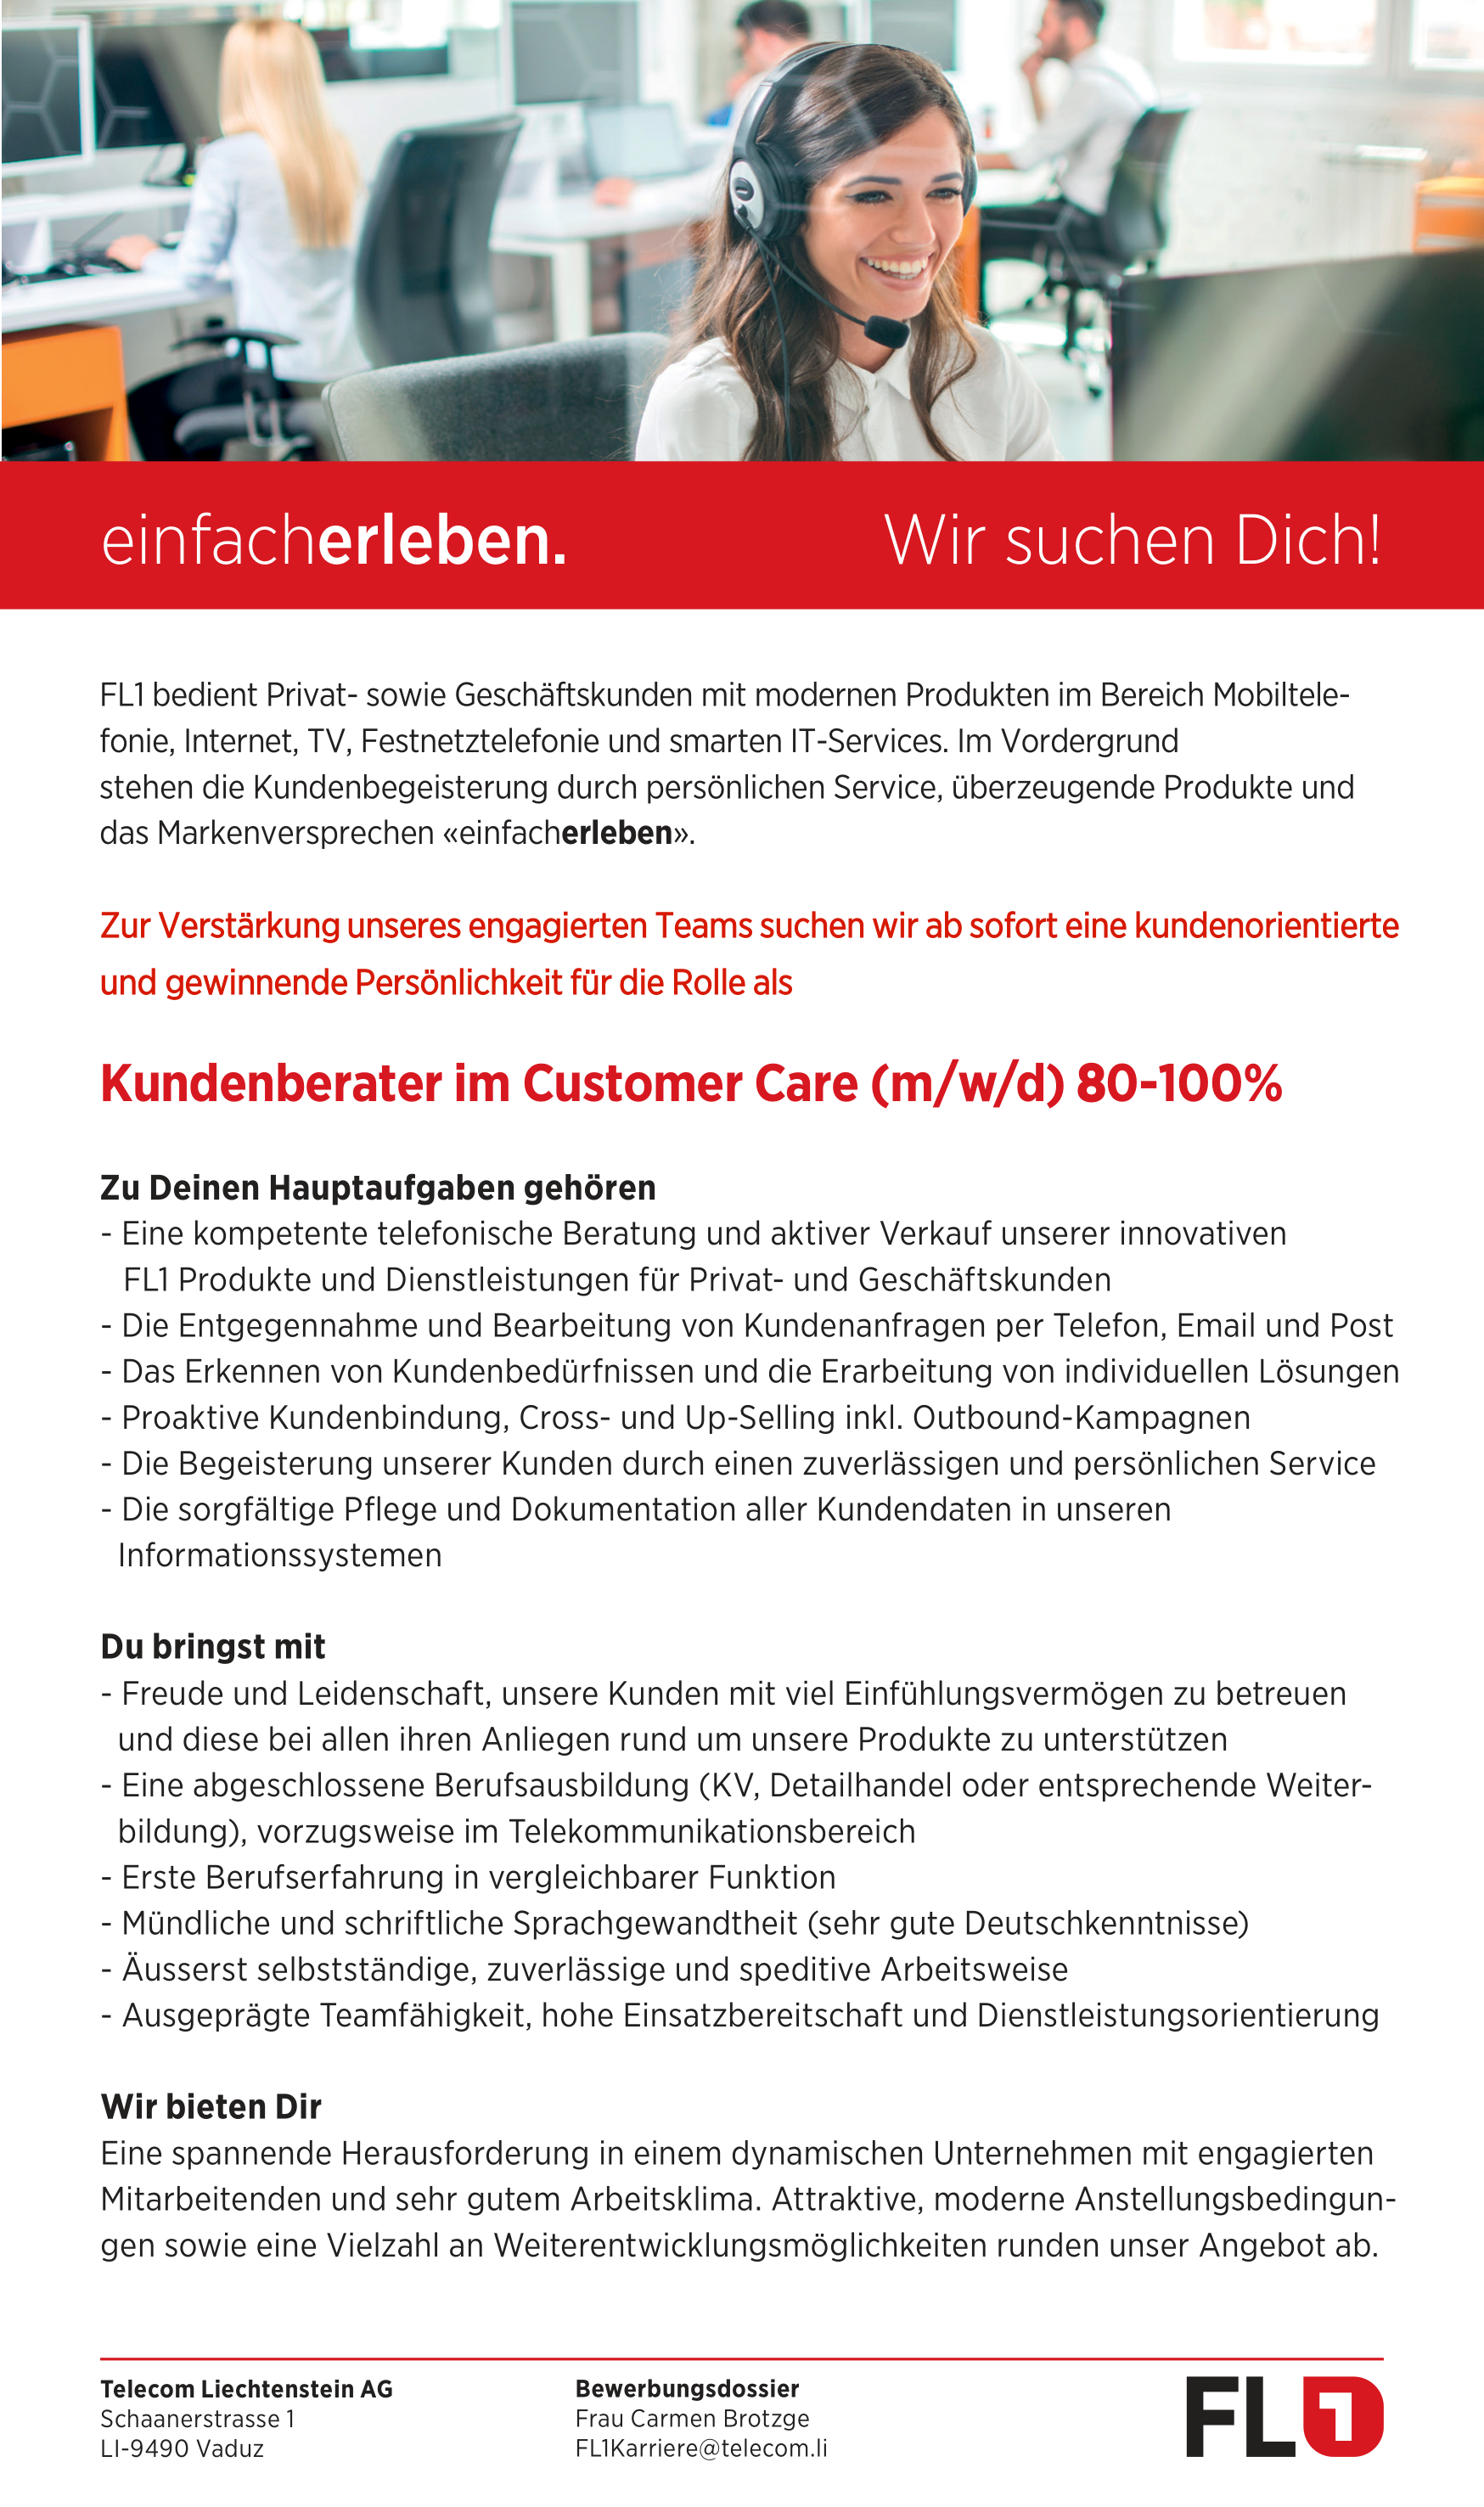 Kundenberater Customer Care (m/w/d) 80-100%